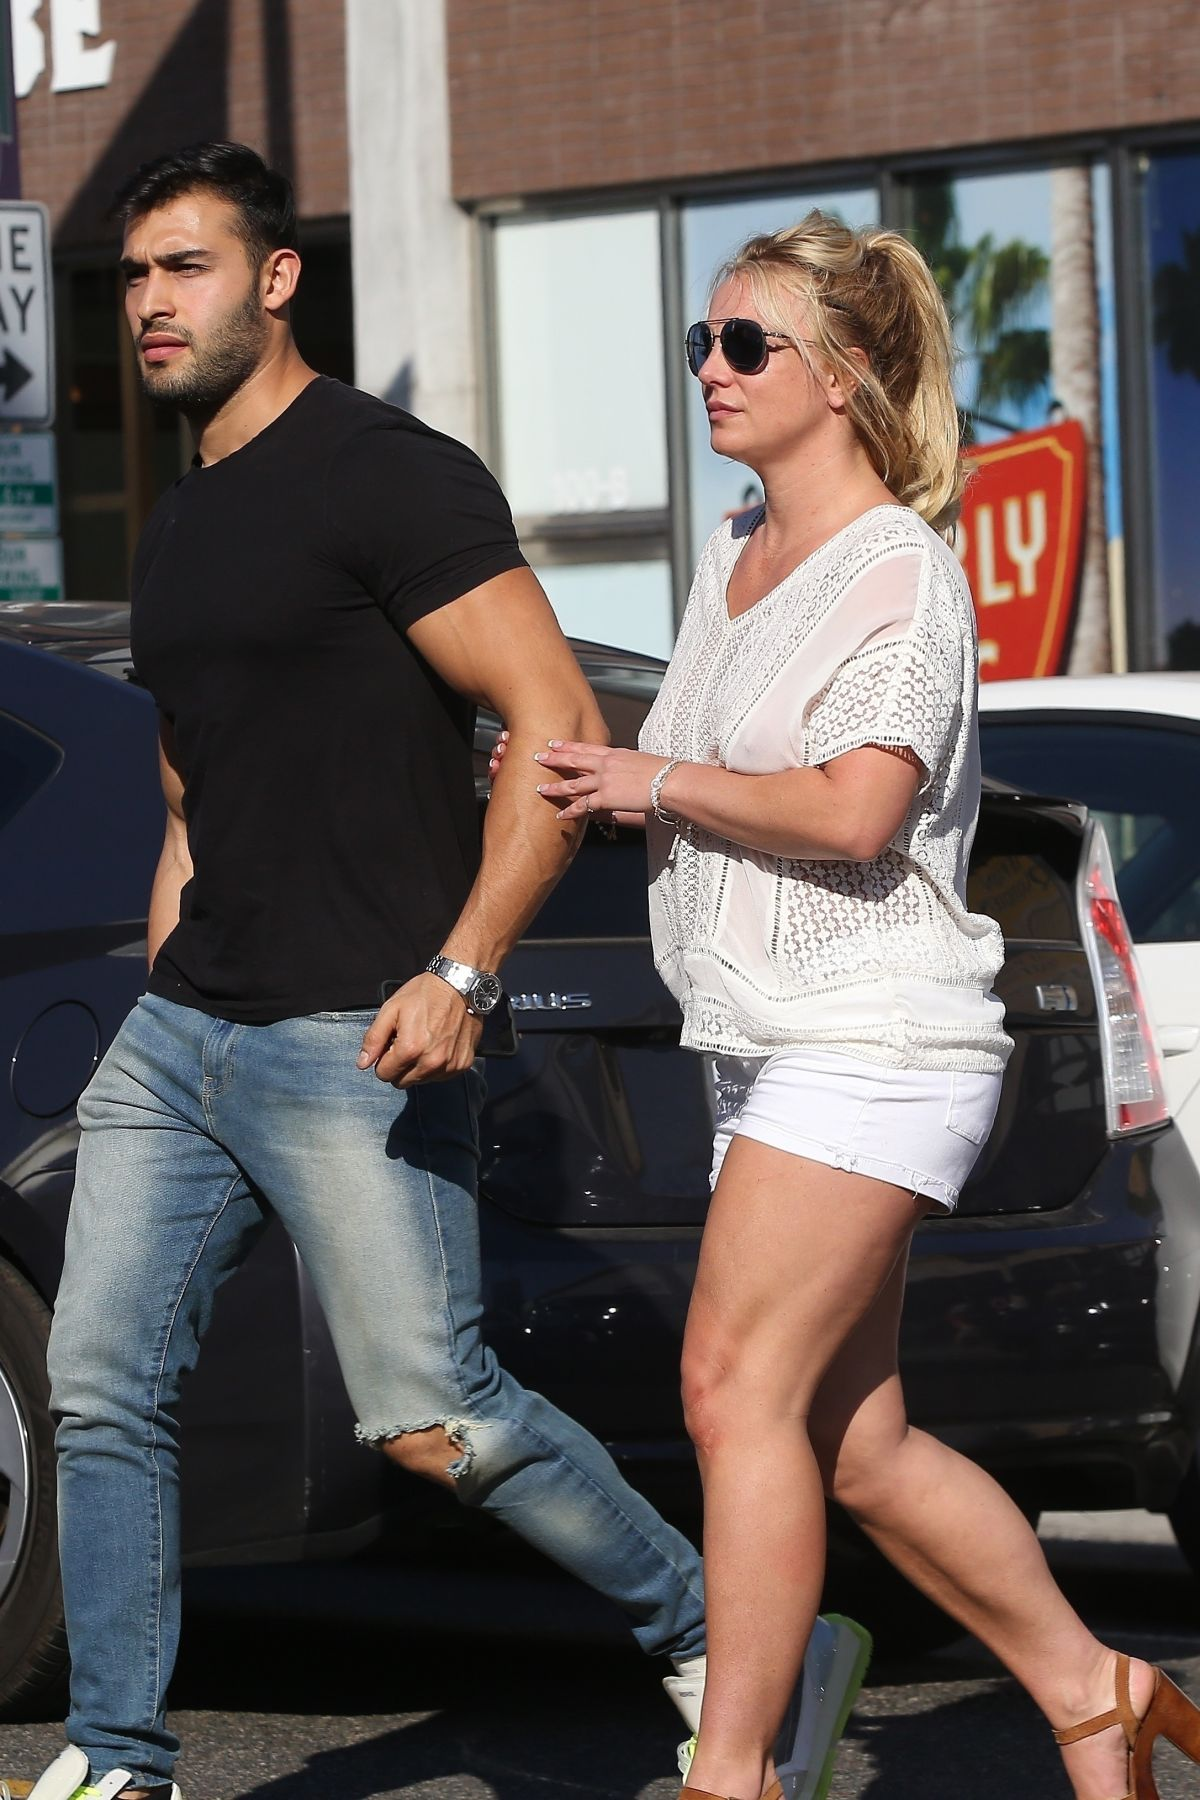 Britney Spears and boyfriend Sam Asghari hold hands while